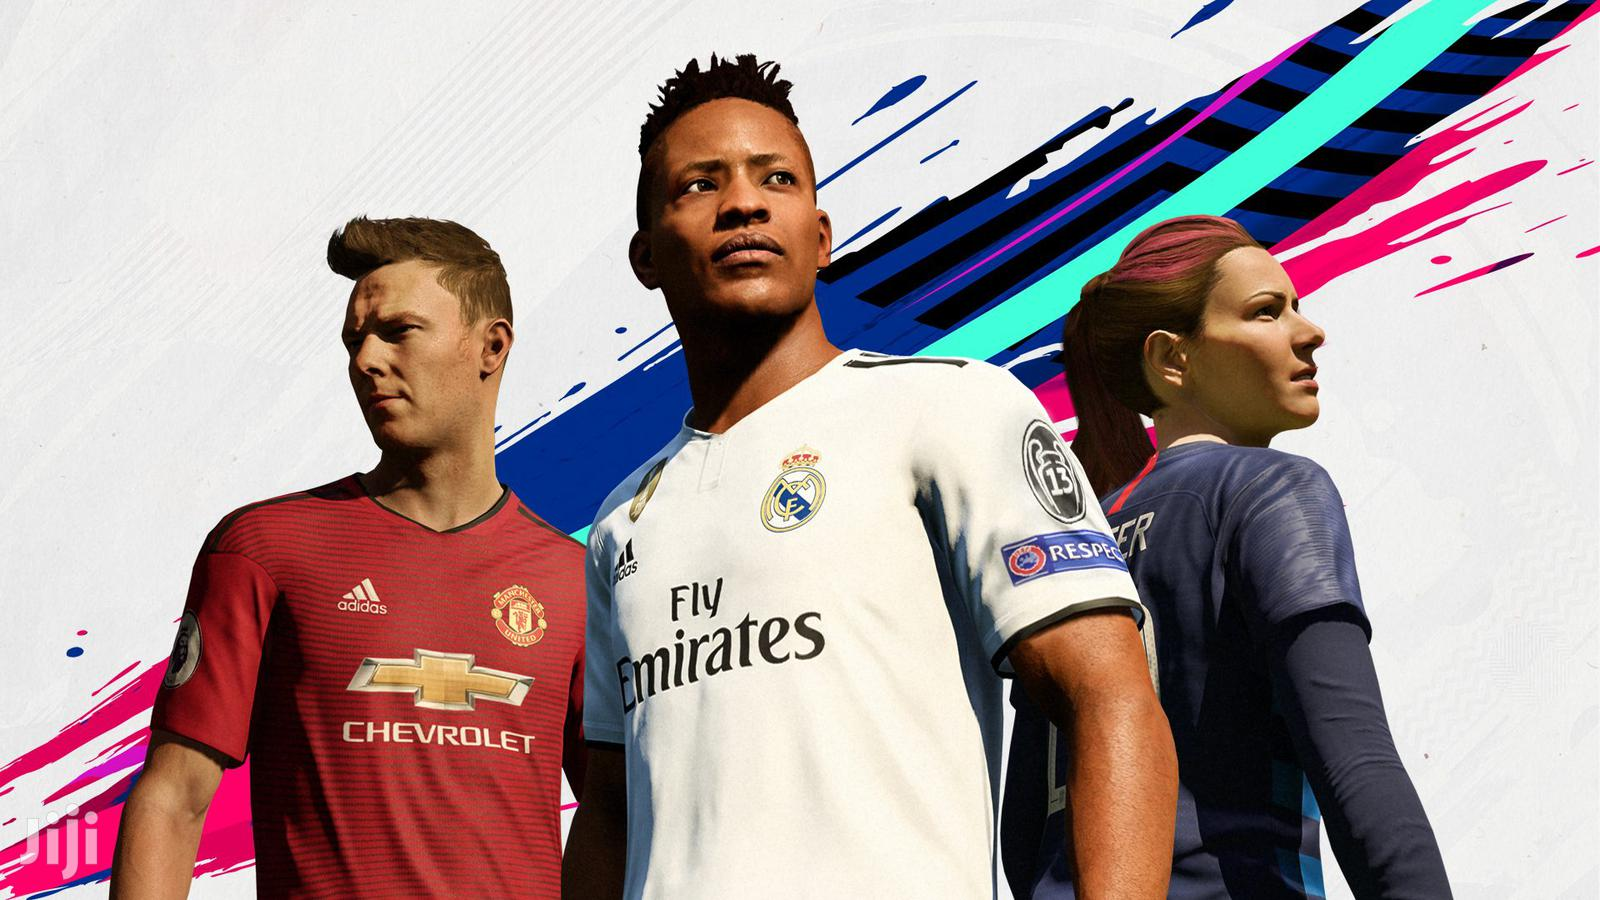 FIFA 19 2018 Full Version And Crack | Video Games for sale in Accra Metropolitan, Greater Accra, Ghana